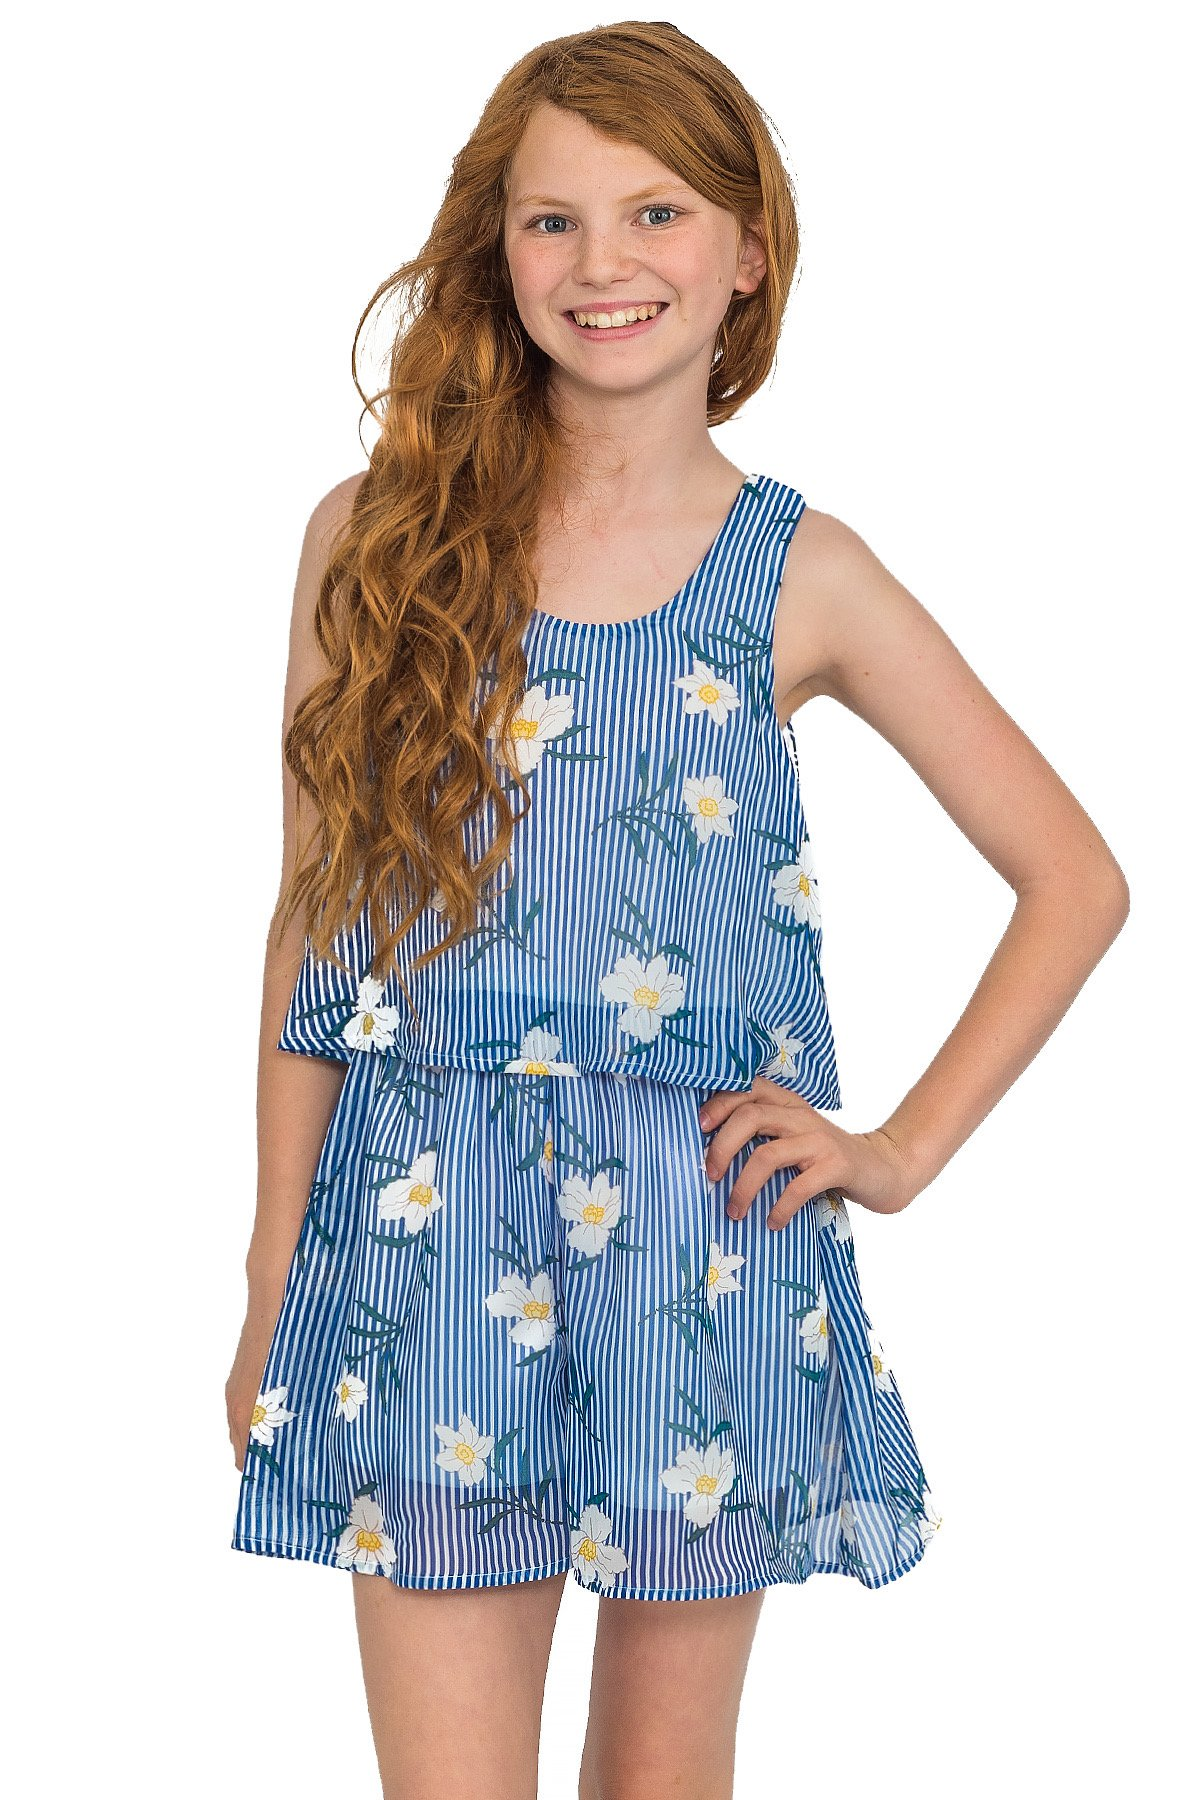 Truly Me, Big Girls Tween Sweet Floral Romper (Many Options), 7-16 (16, Sky Blue)